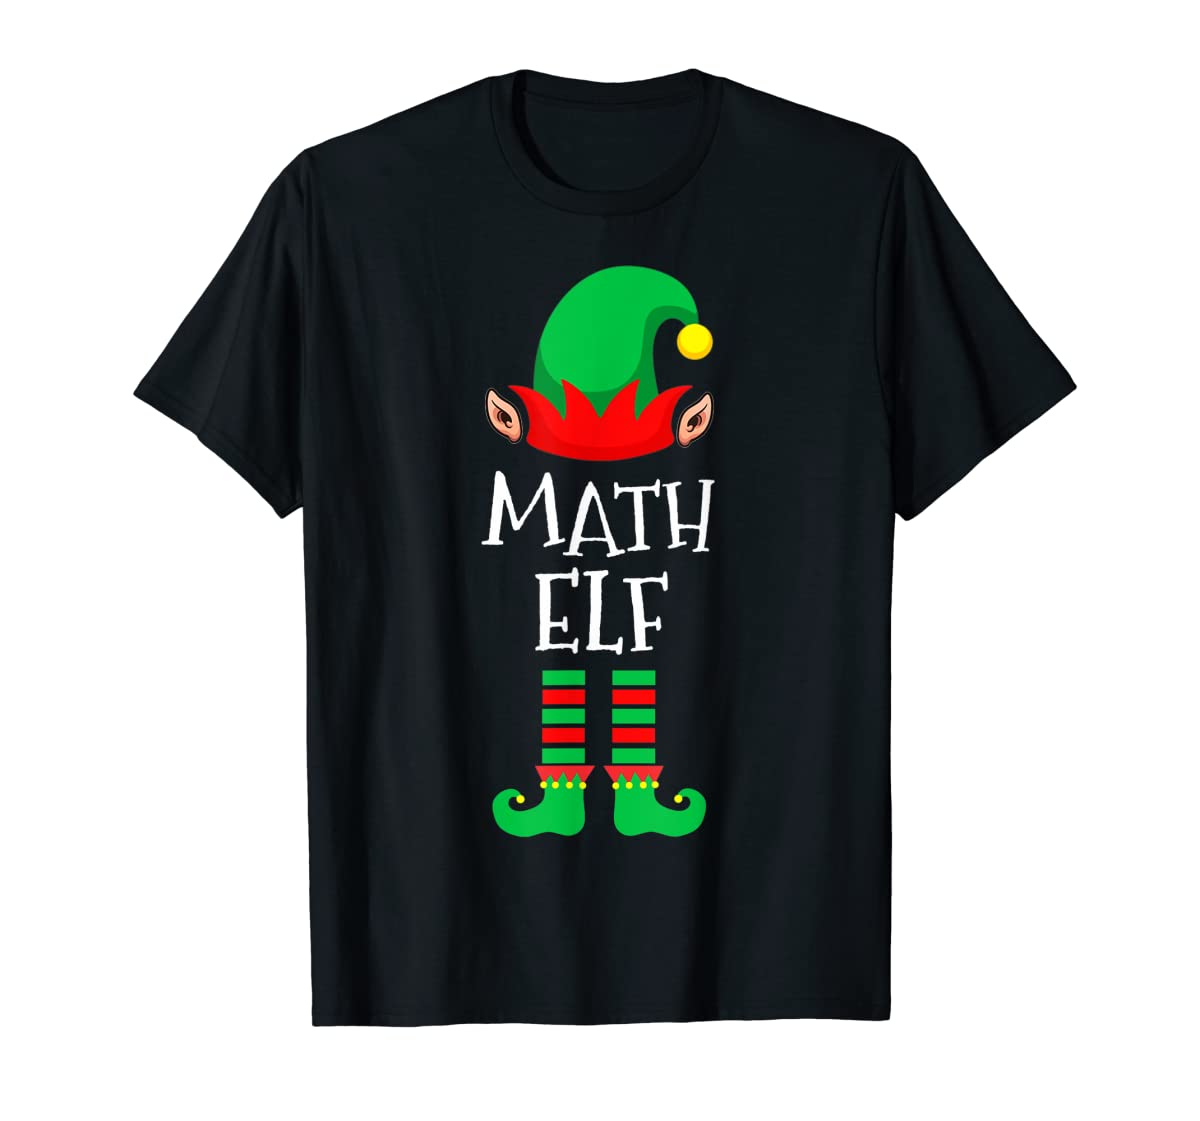 Math Elf - Funny School Teacher Christmas T-Shirt-Men's T-Shirt-Black